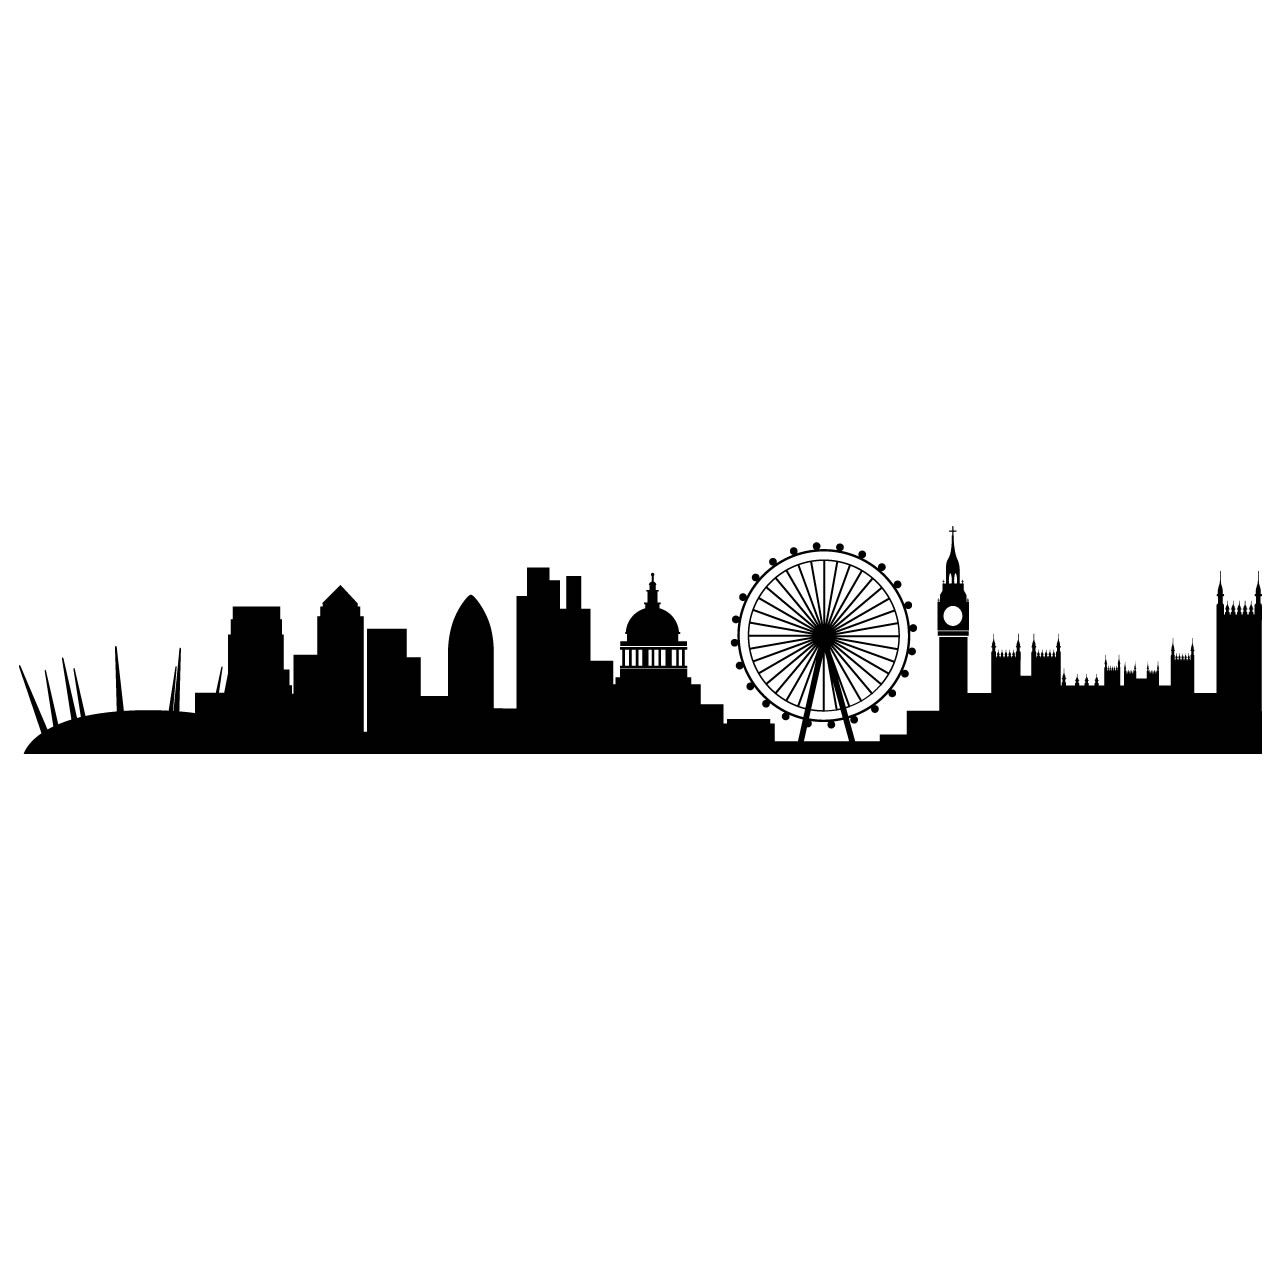 1280x1280 London skyline sticker Gus Pinterest London skyline